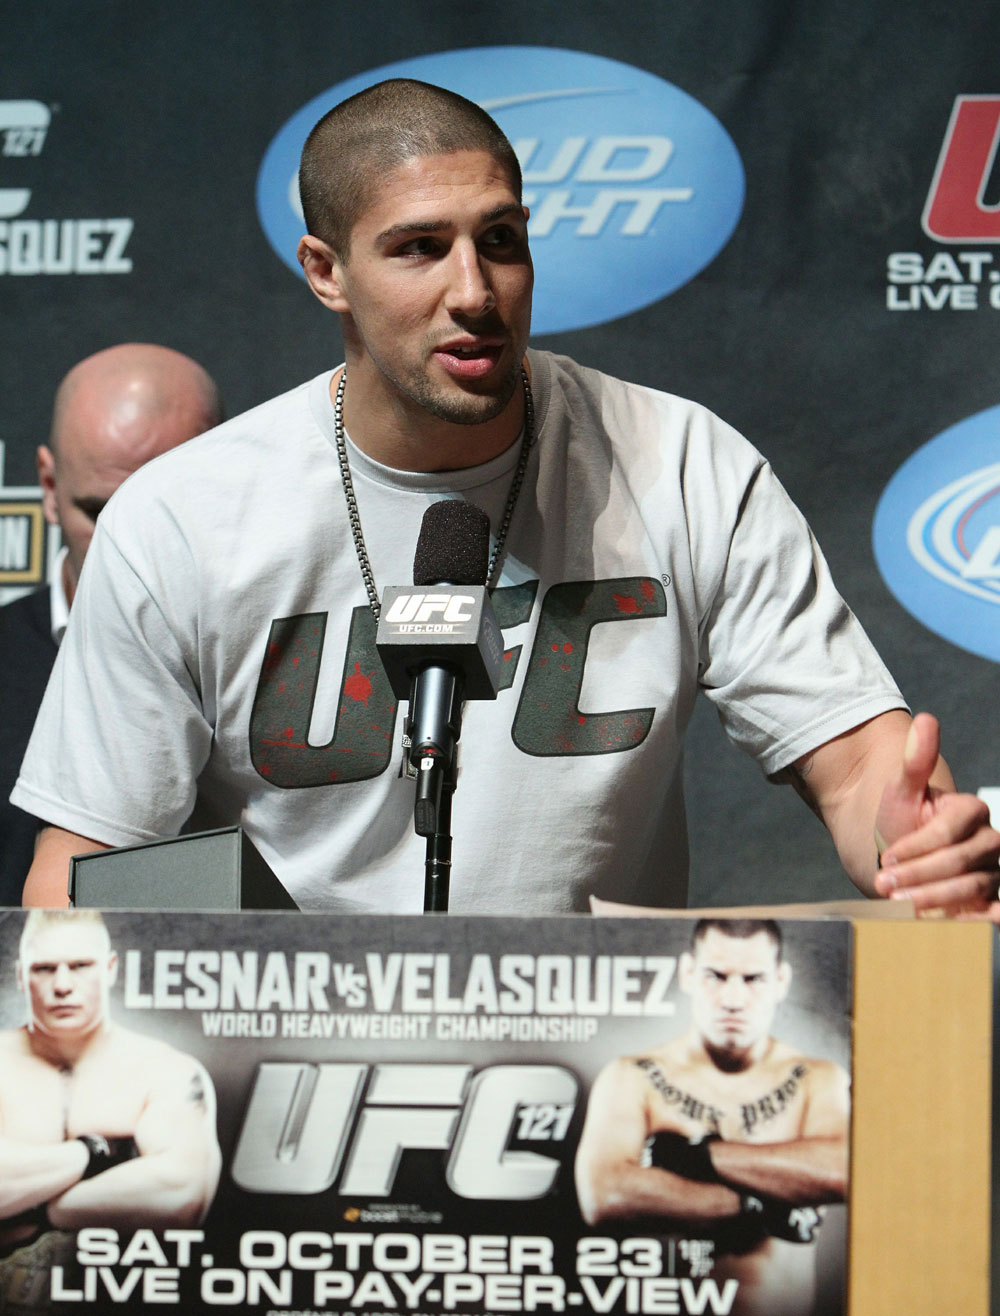 Heavyweight fighter Brendan Schaub accepts the Tequila Cazadores Spirit Award at the UFC 121 pre-fight press conference at the Walt Disney Concert Hall on October, 20 2010 in Los Angeles, California.